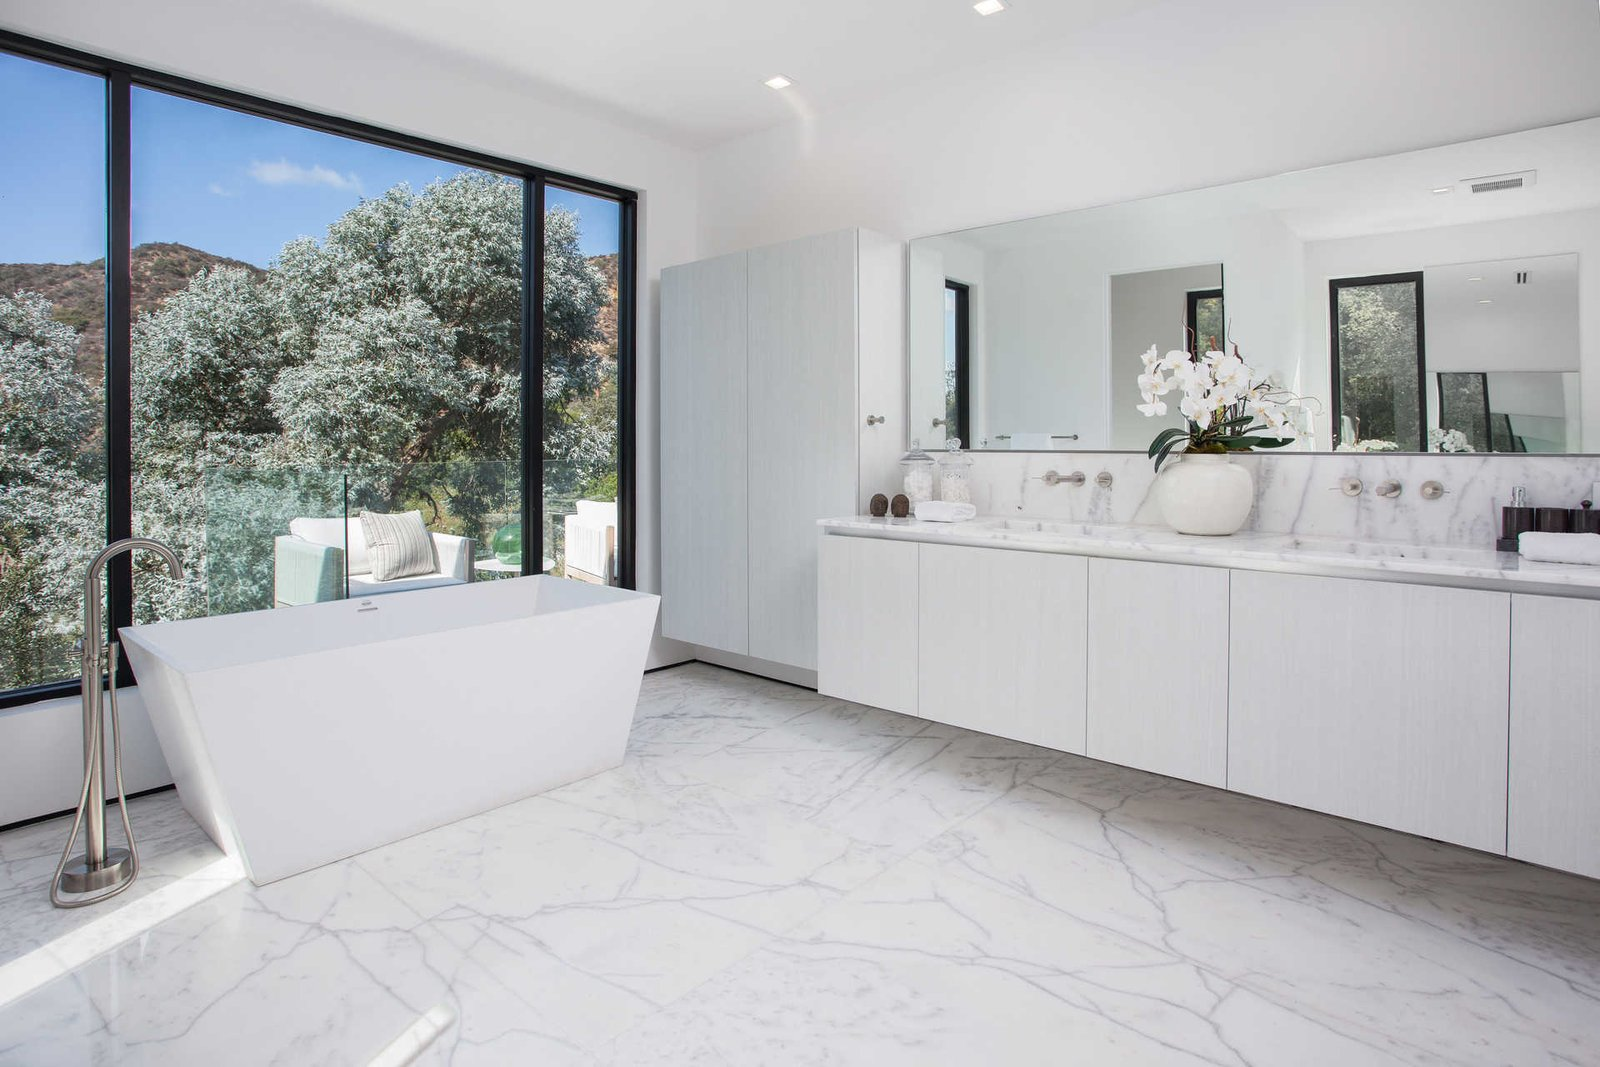 An elegant bathroom with standalone tub overlooks the hills.  Cherokee Contemporary by Luxury Homes + Lifestyle